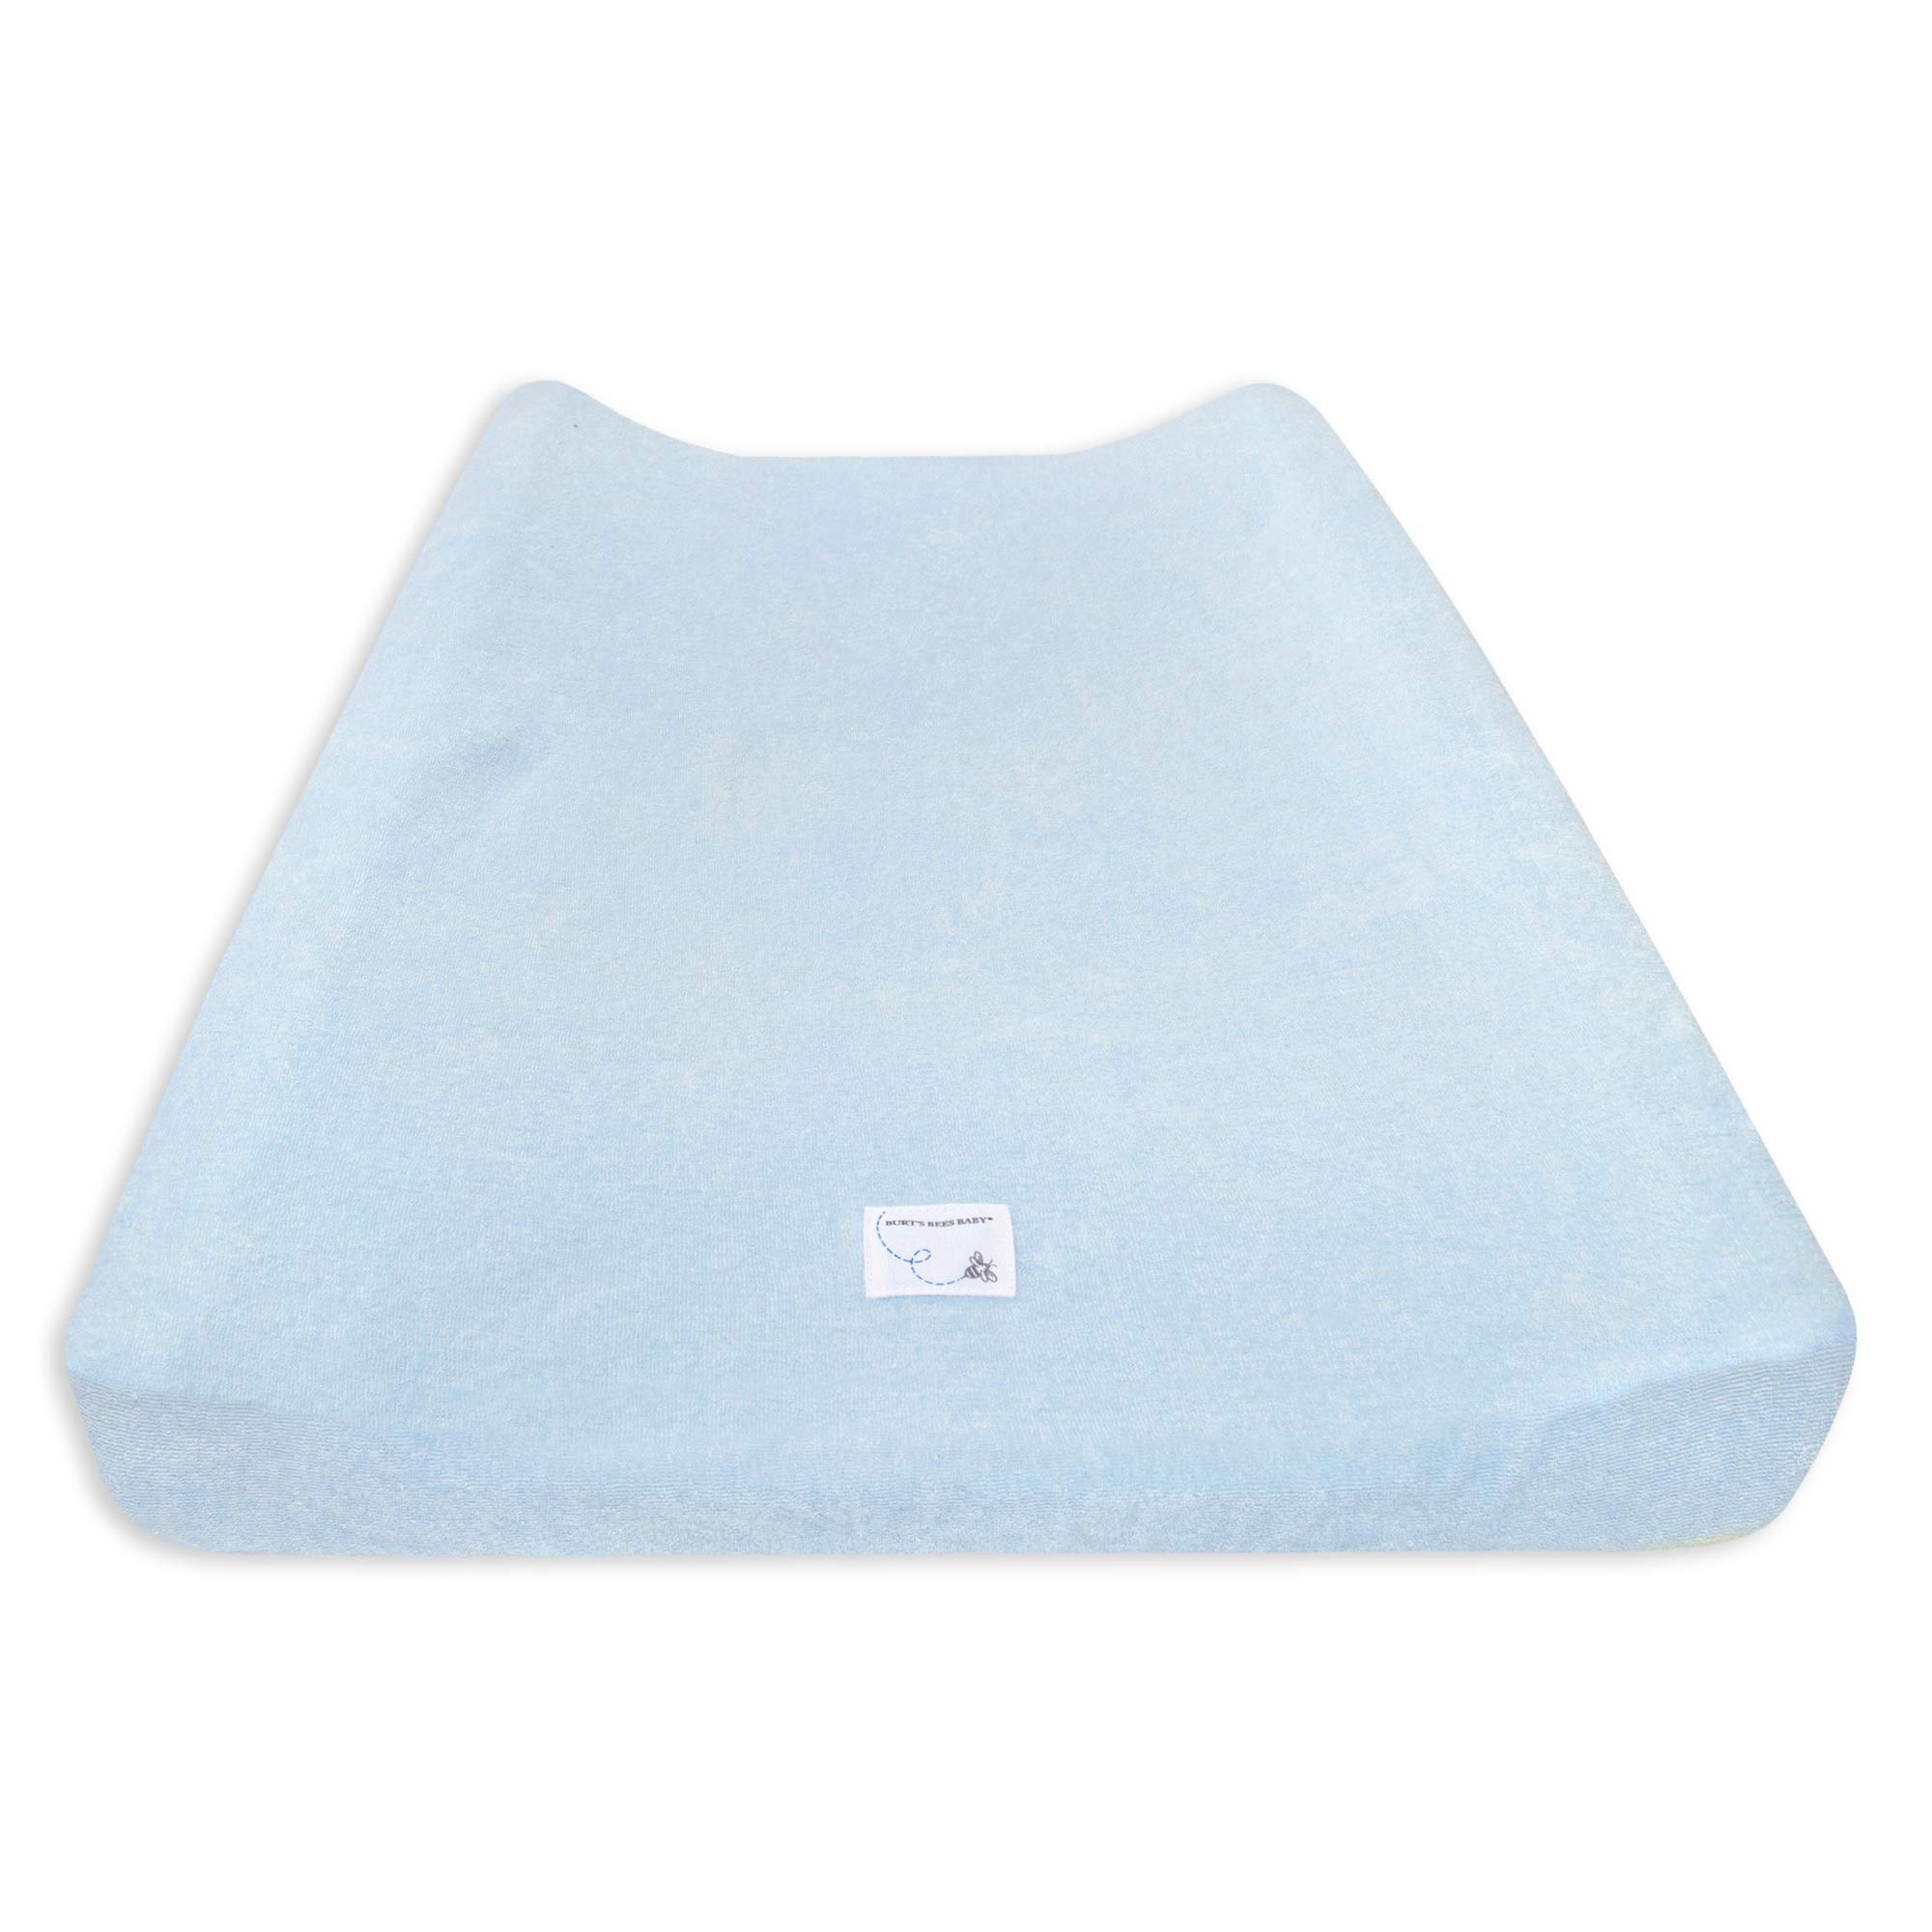 """Burt's Bees Baby - Changing Pad Cover, Super Absorbent Knit Terry, 100% Organic Cotton for Standard 16"""" x 32"""" Changing Pads (Sky Blue)"""